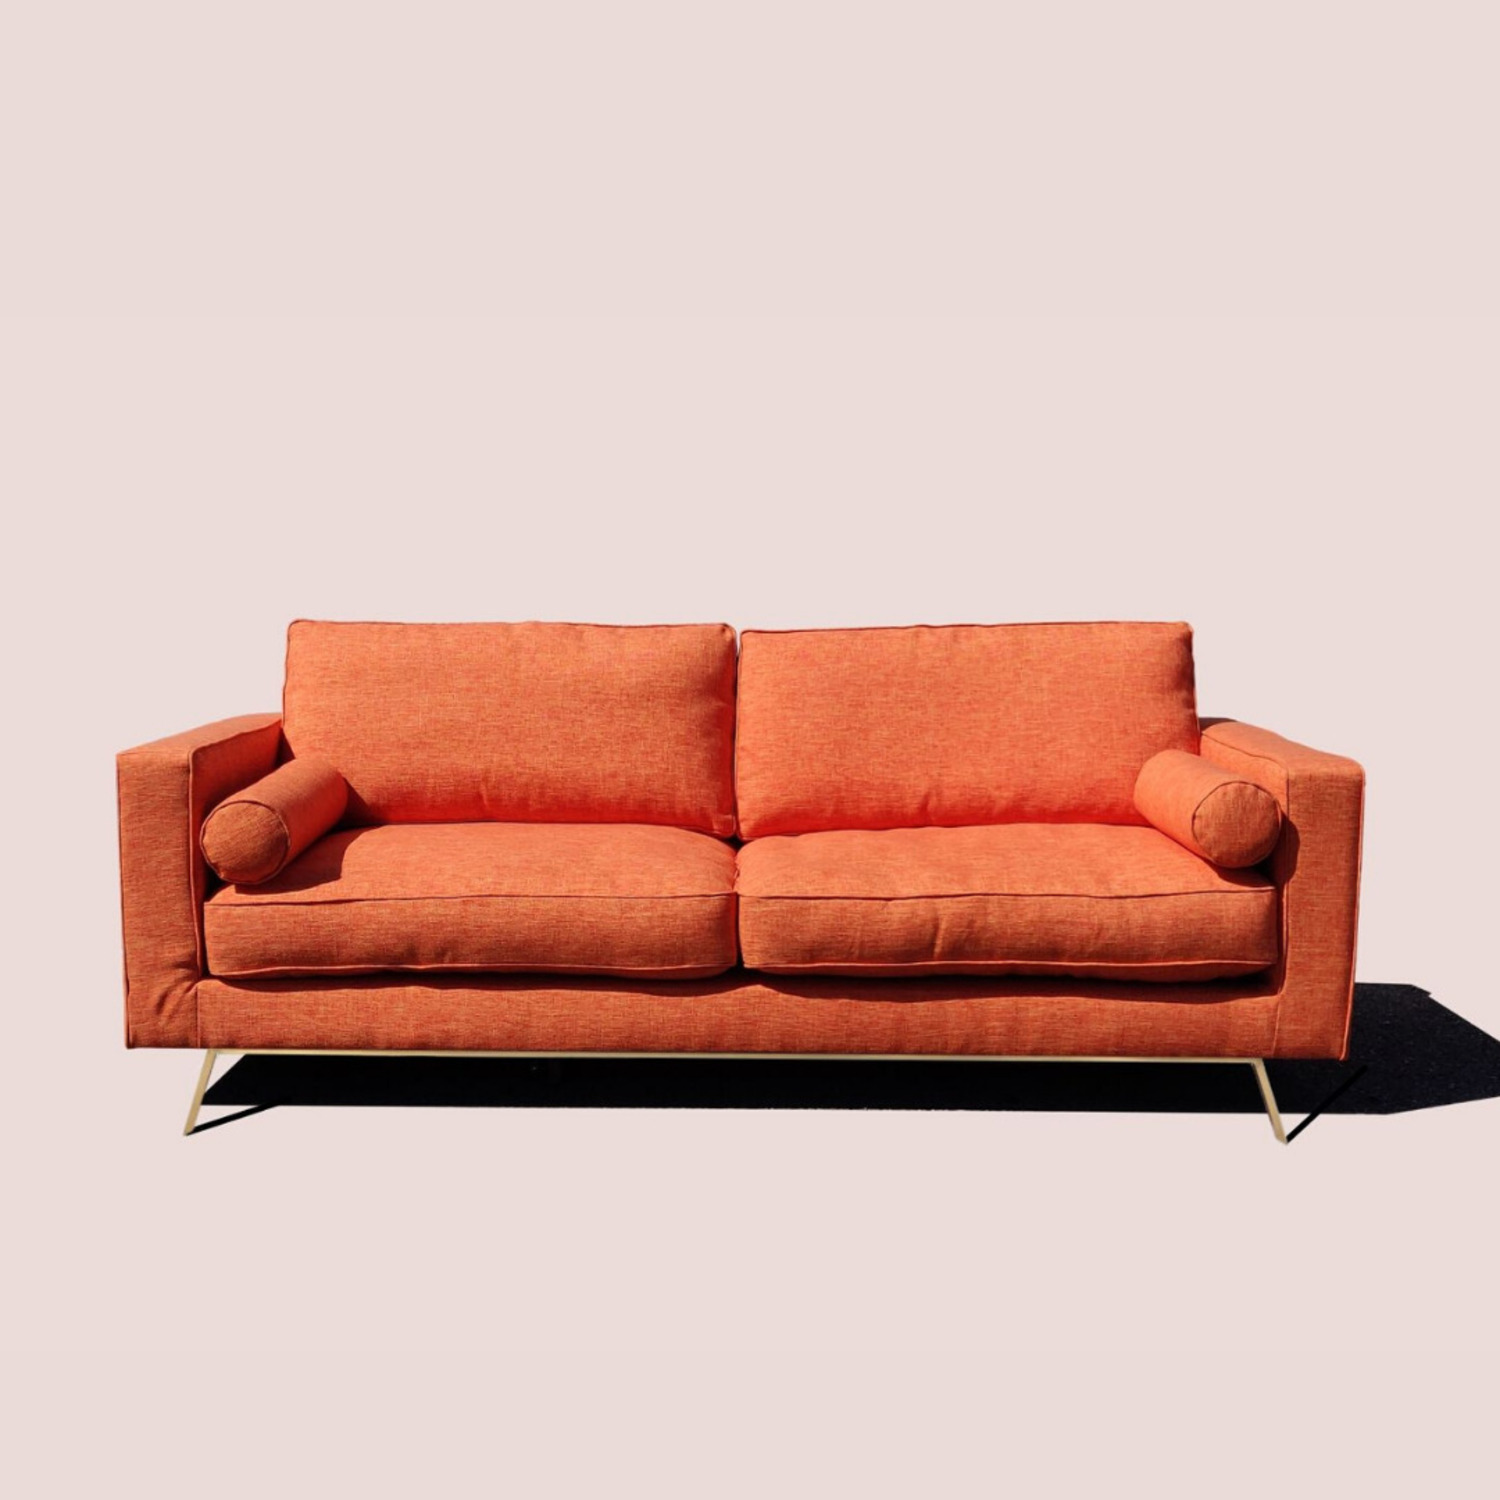 Brooklyn Space Introspect Mid Century Modern Sofa - image-1